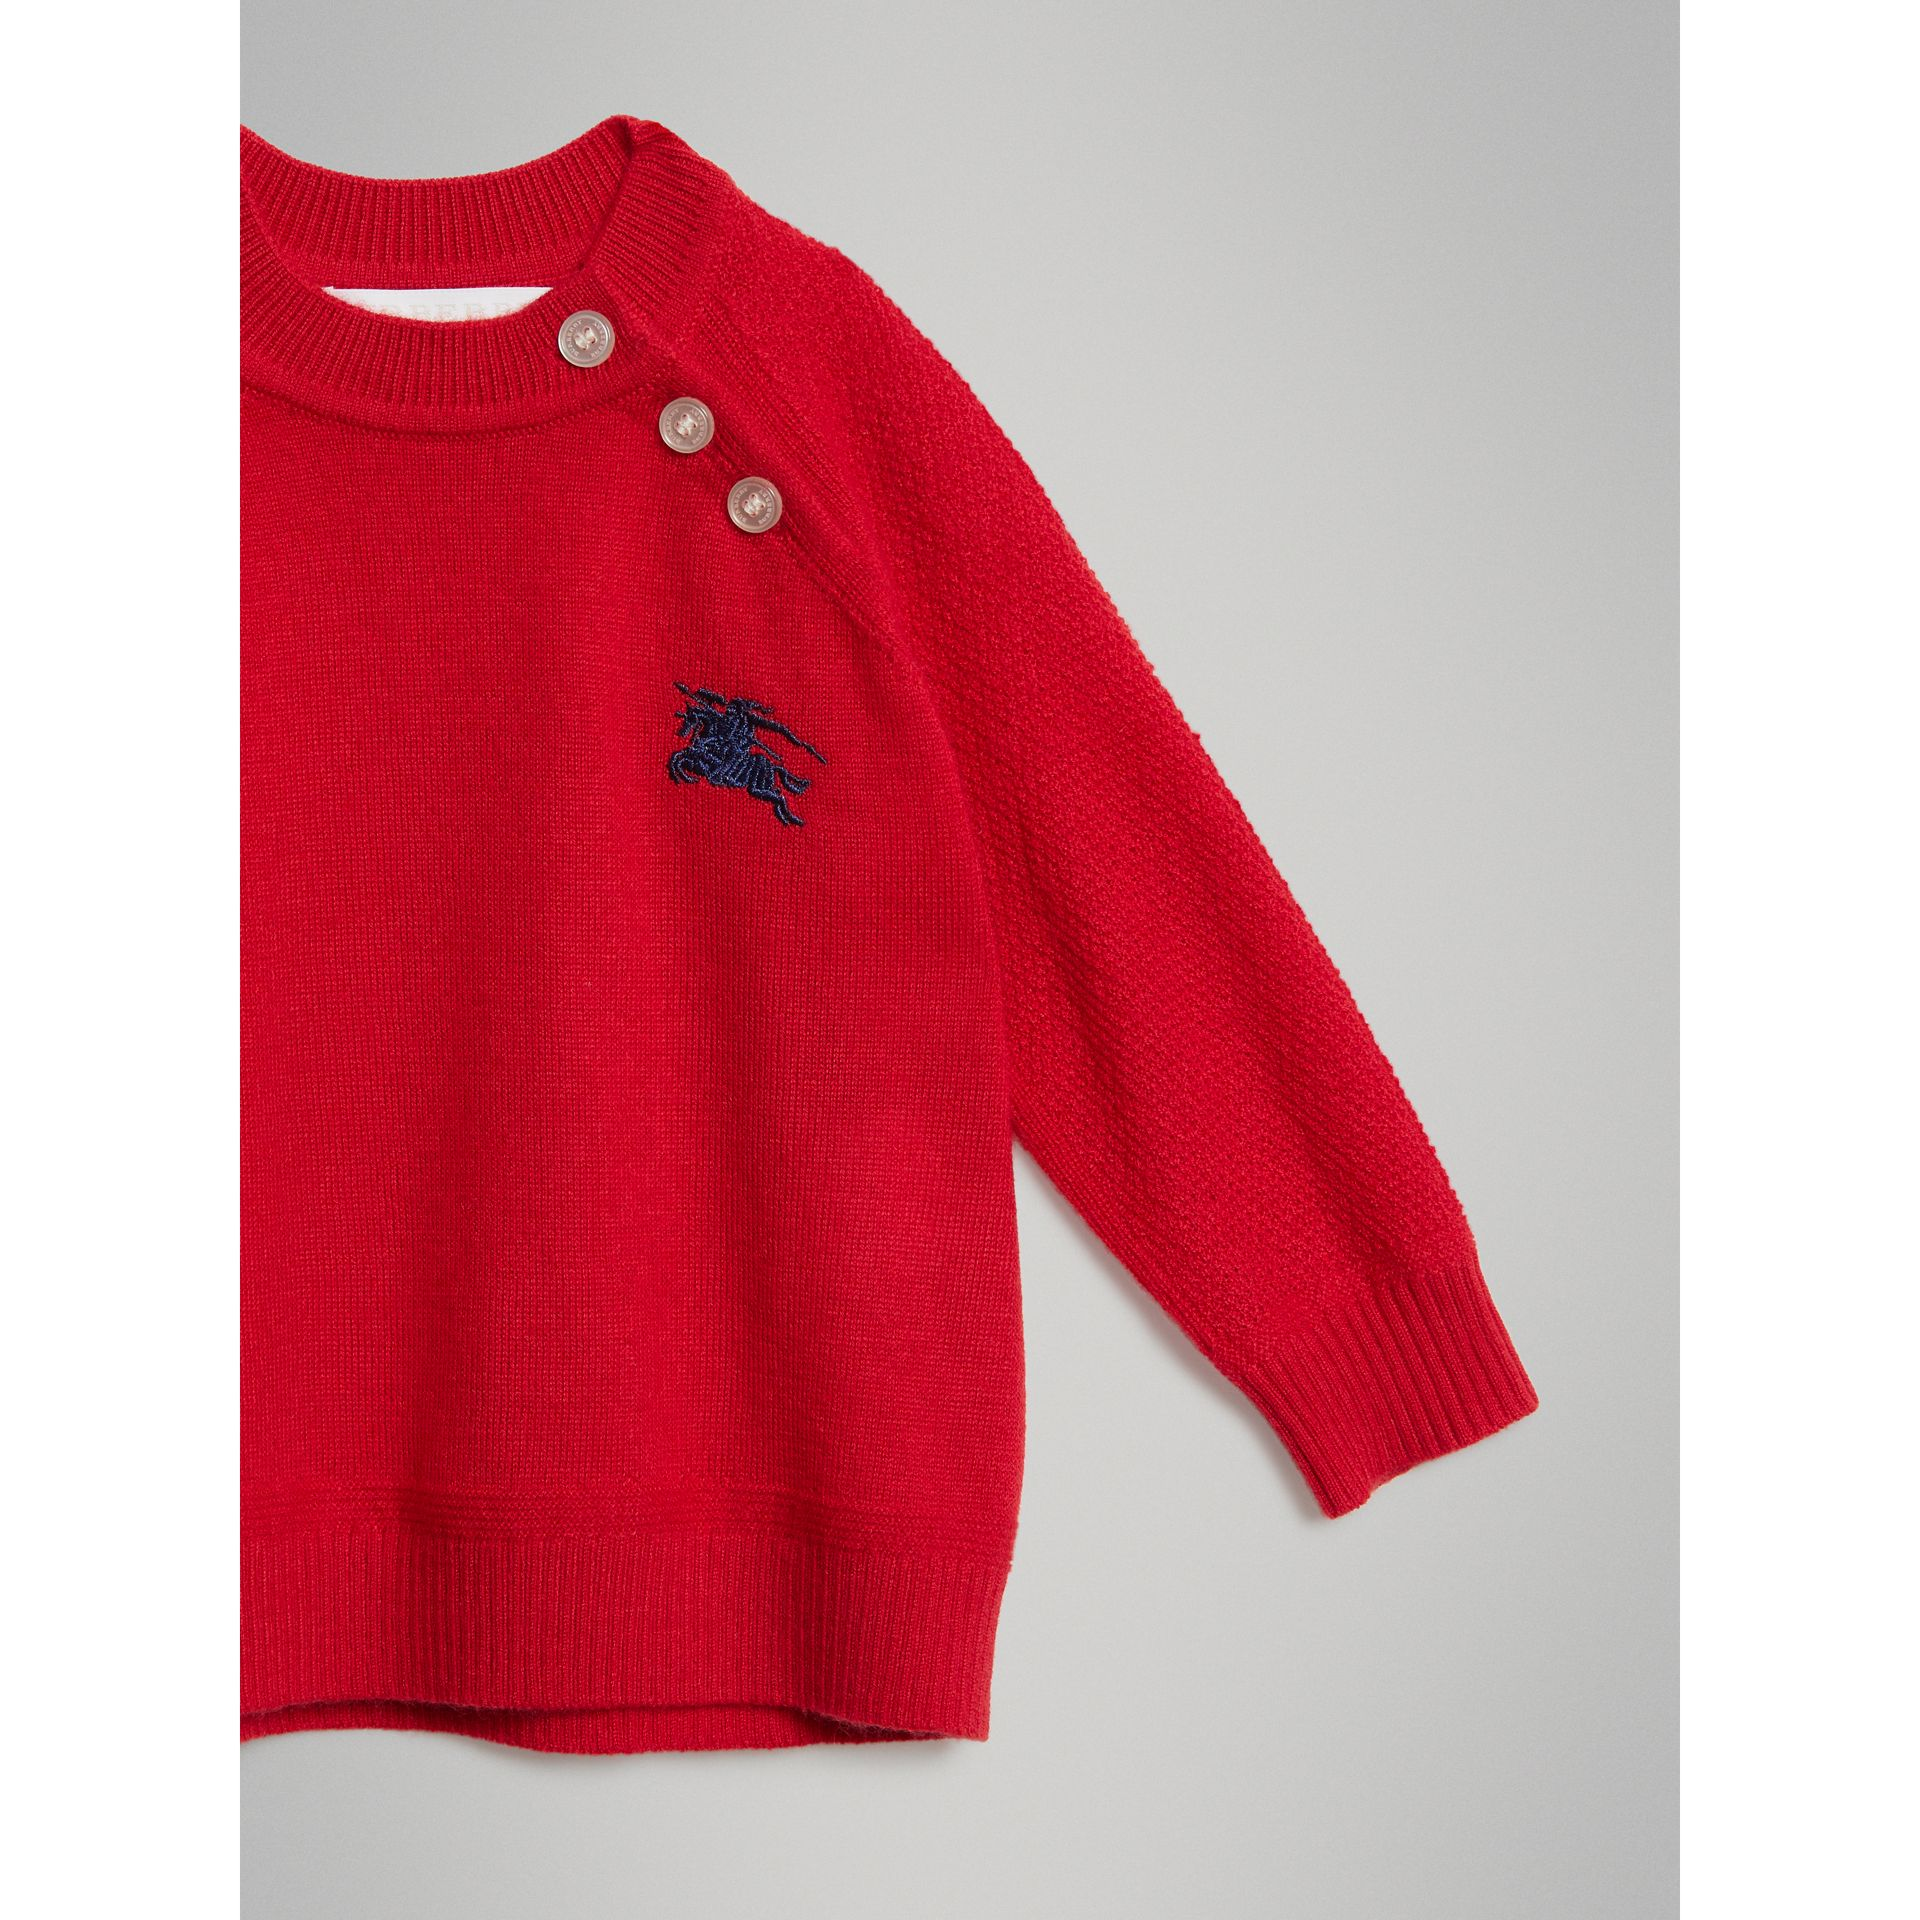 Contrast Motif Cashmere Sweater in Burgundy Red - Children | Burberry Singapore - gallery image 4